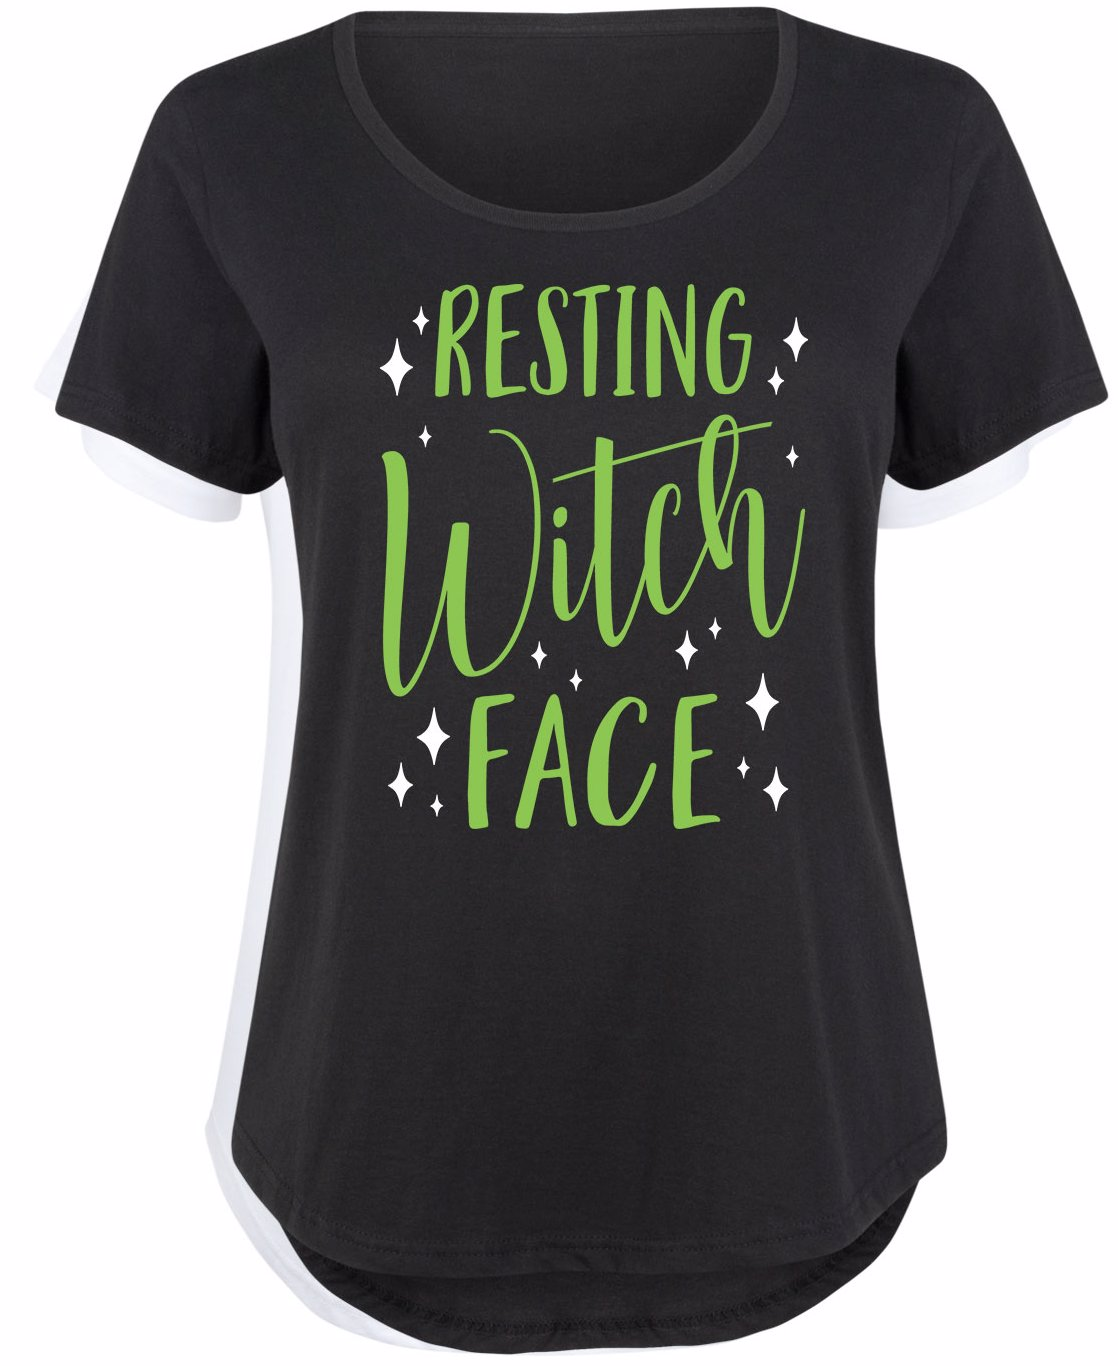 83ab44d5263 Preview with Zoom. Air Waves. Resting Witch Face Maternity Plus Size Scoop  Neck Tee Black